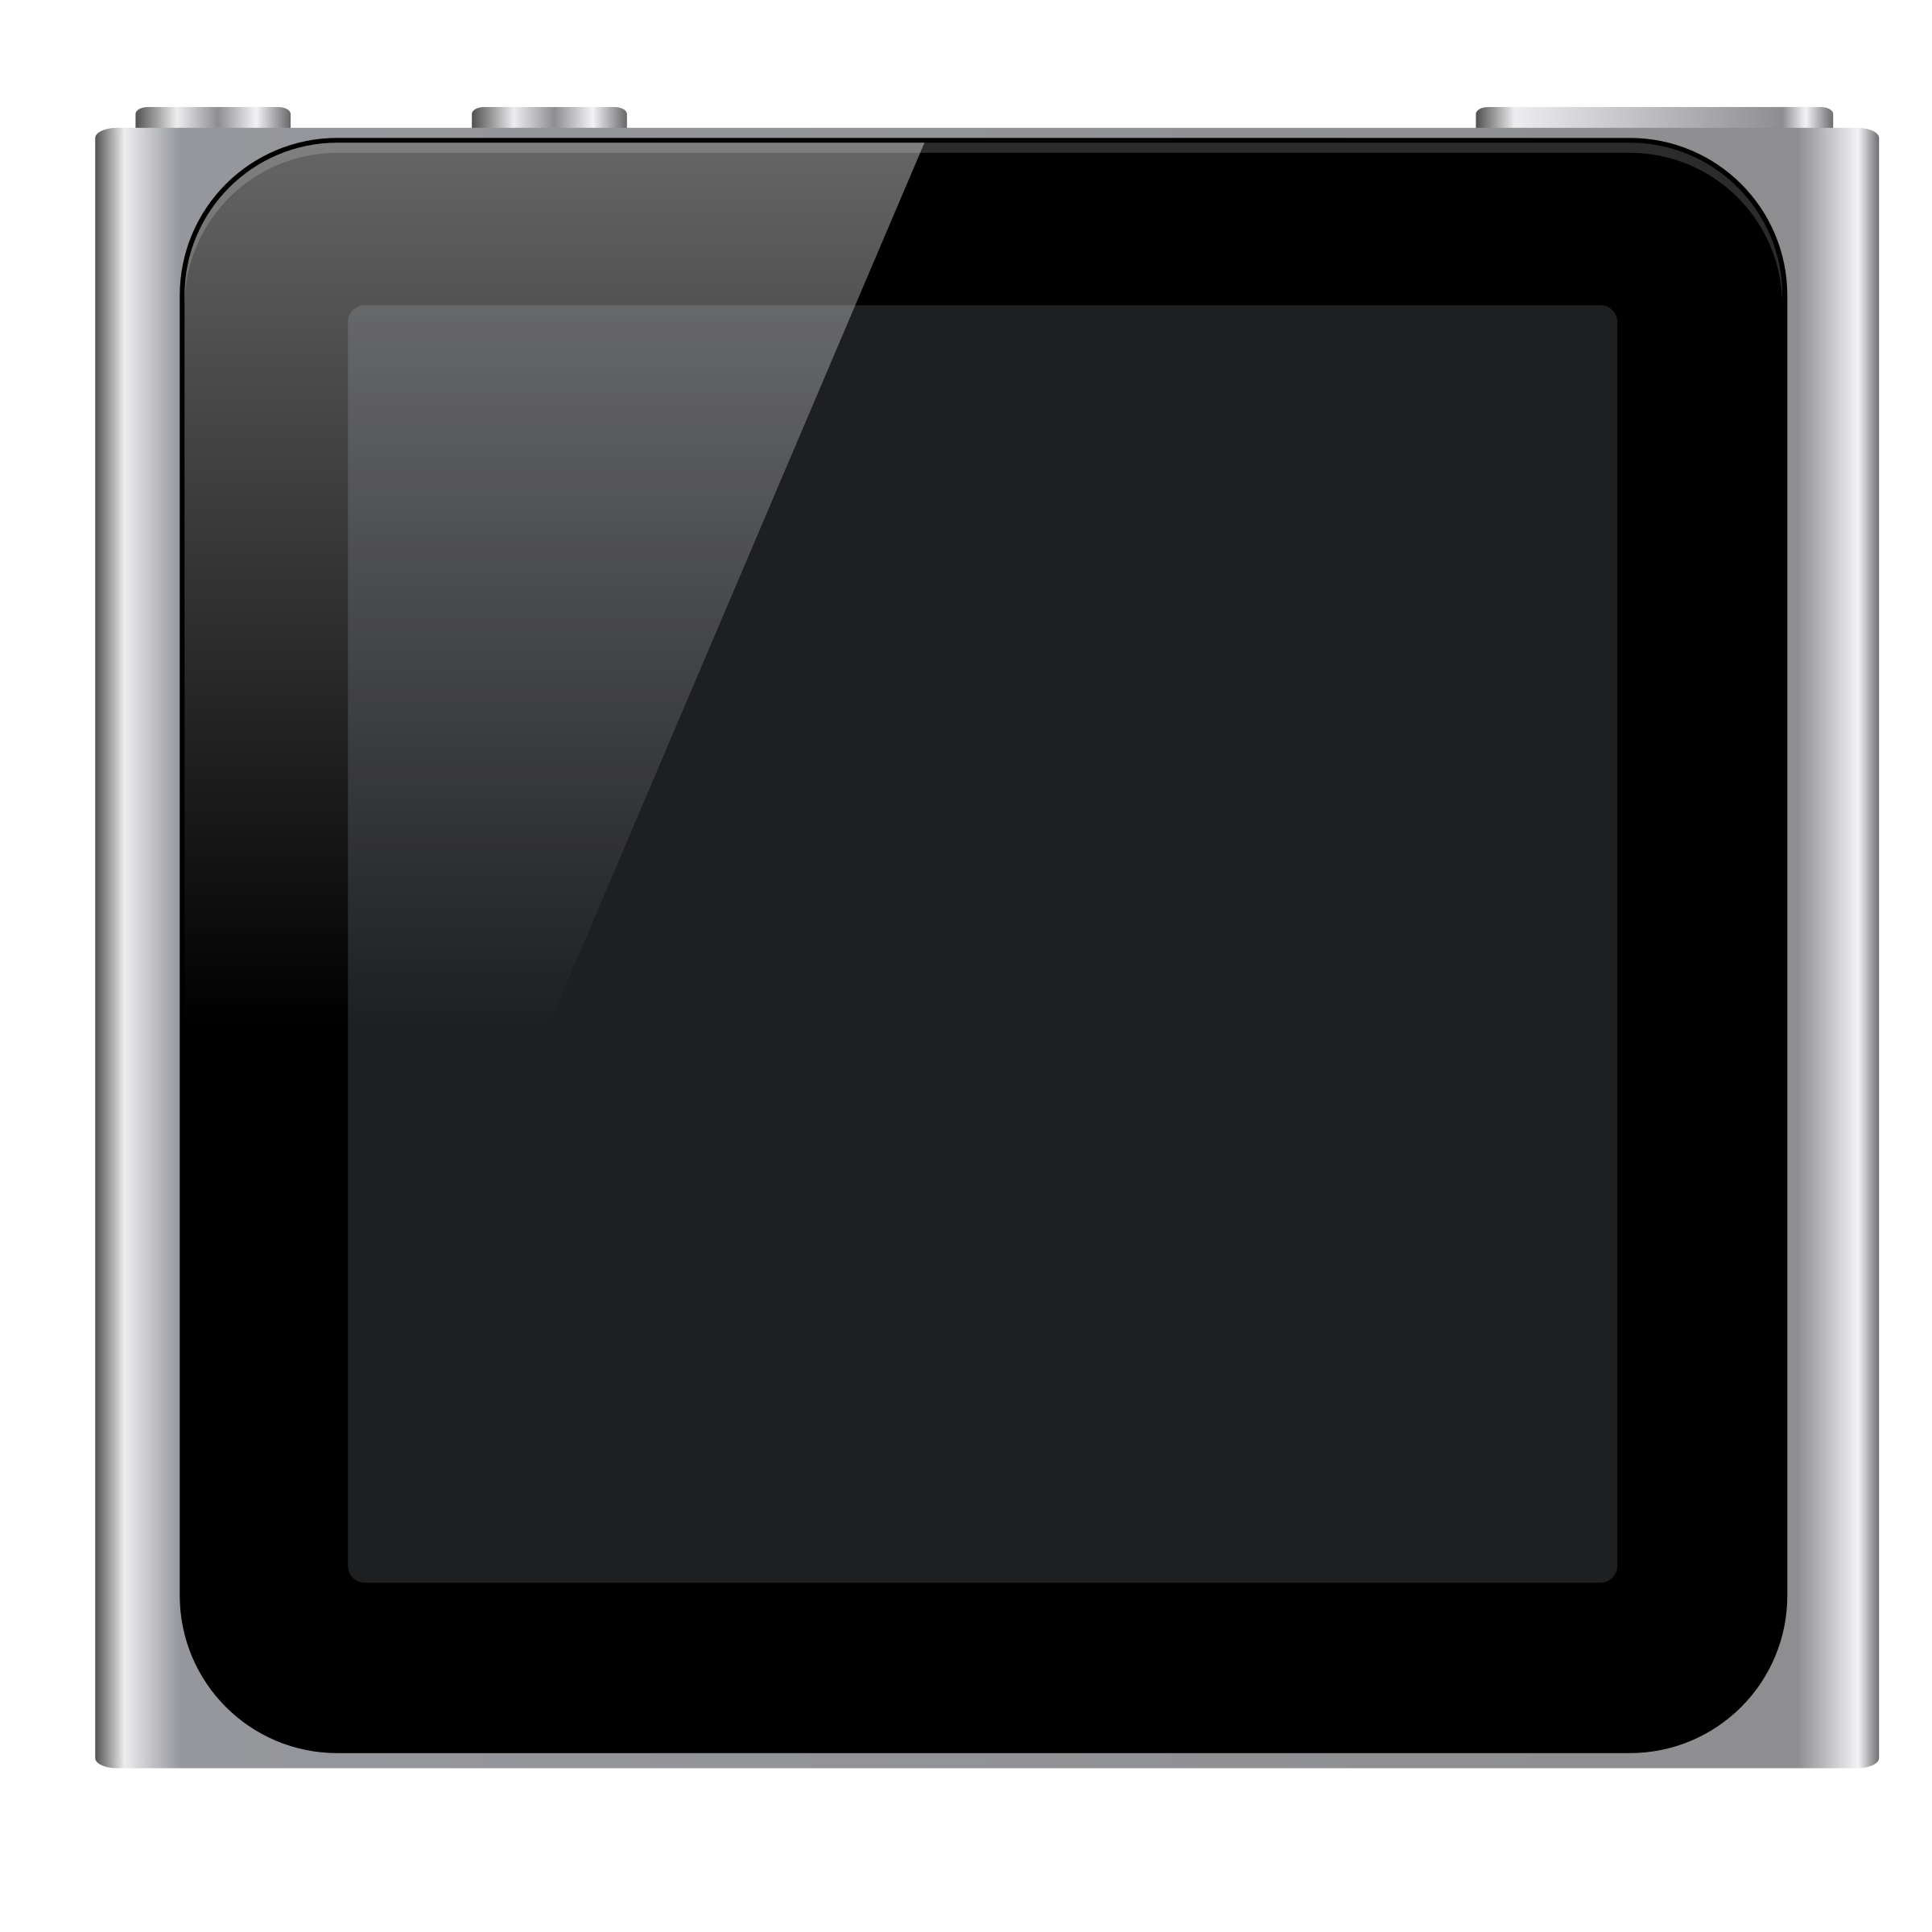 iPod Nano 6th Generation by jhnri4